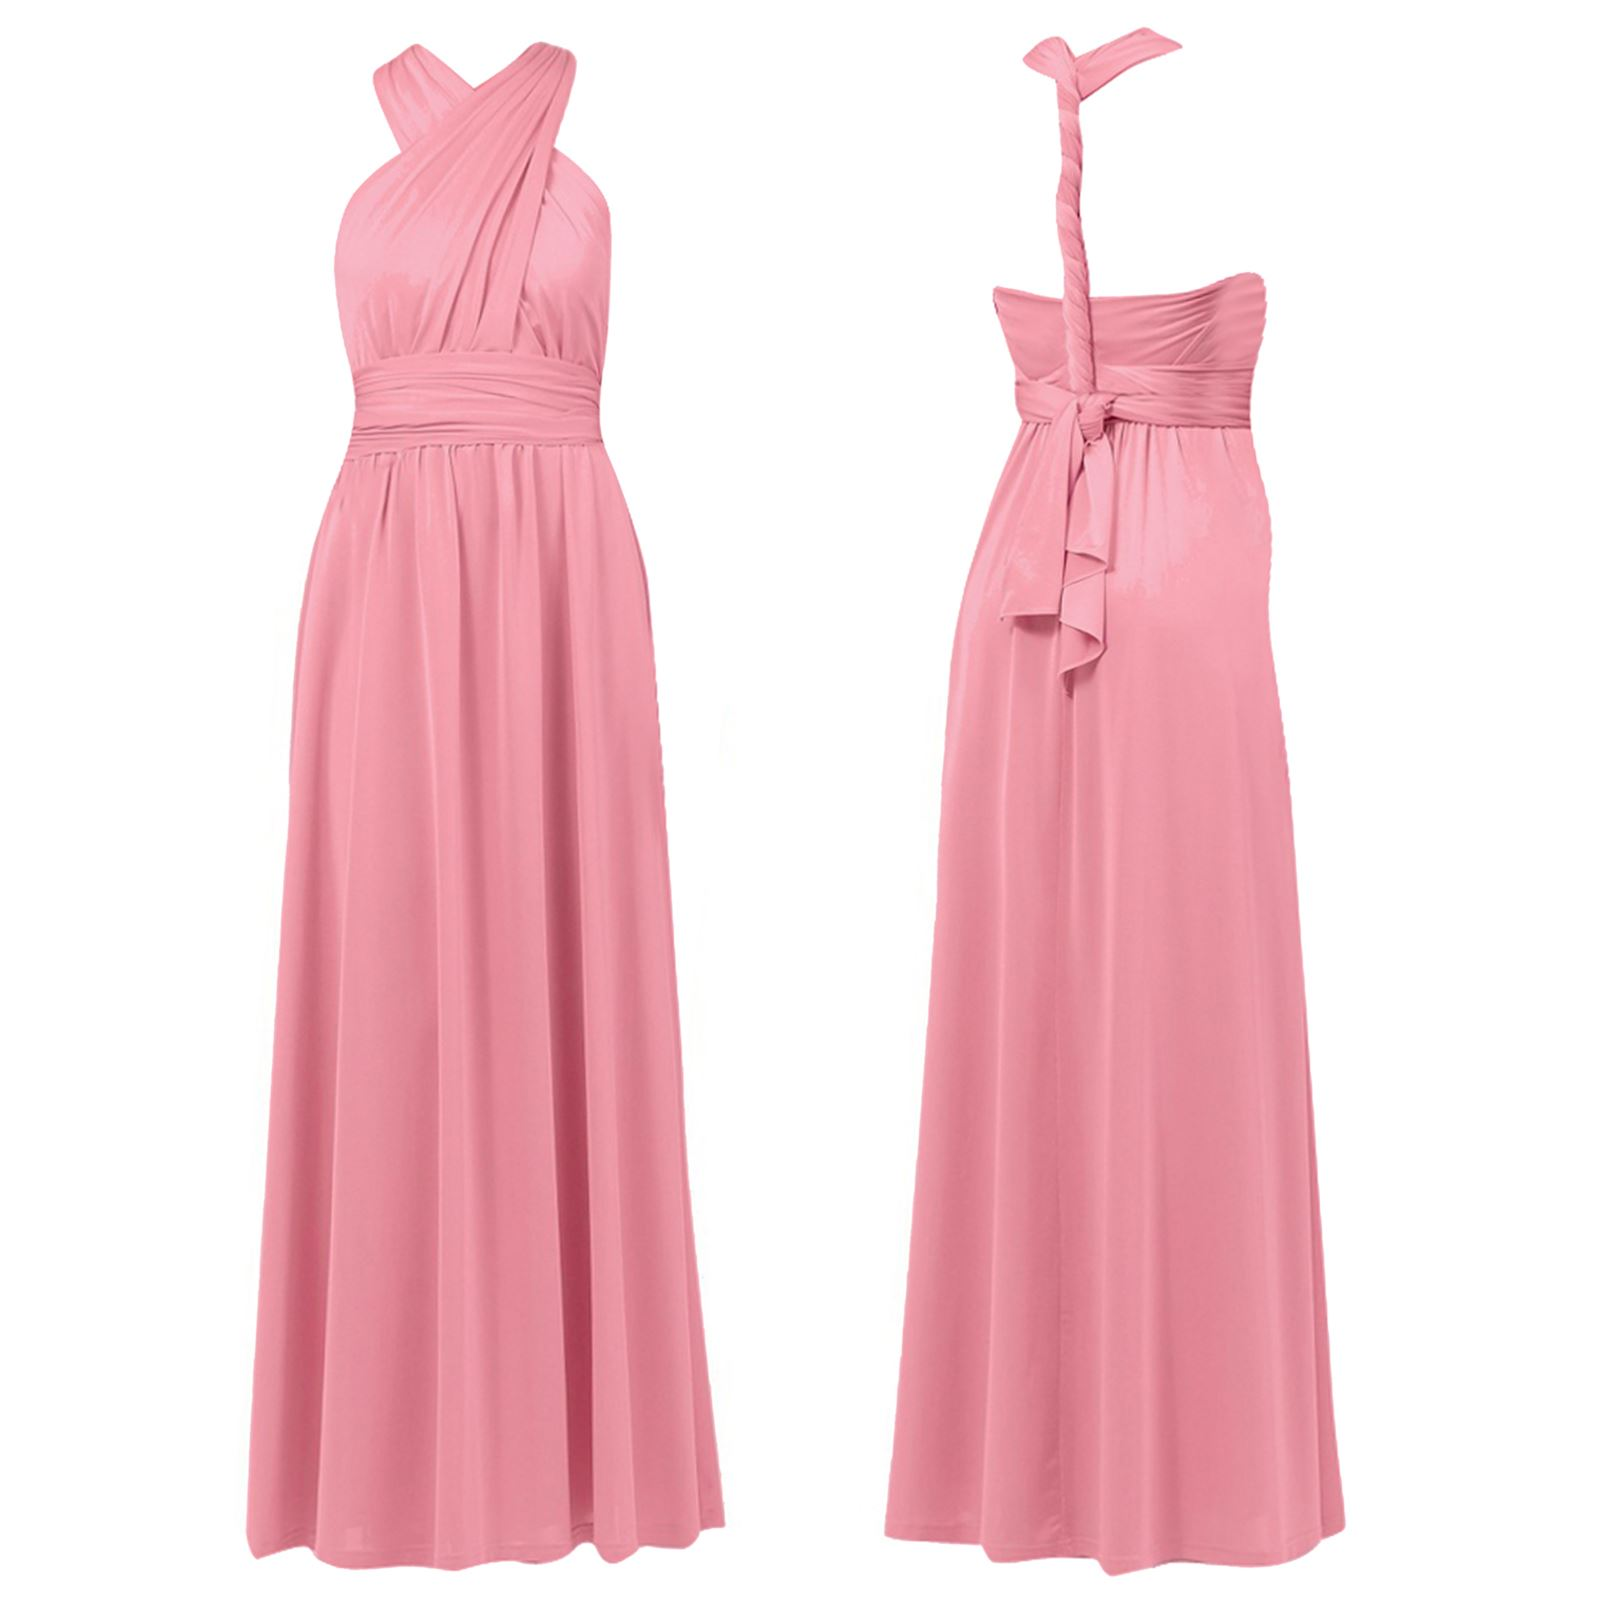 Ex debut multiway maxi dress evening prom bridesmaid outfit pink ex debut multiway maxi dress evening prom bridesmaid pink debenhams 8 10 16 18 ombrellifo Image collections